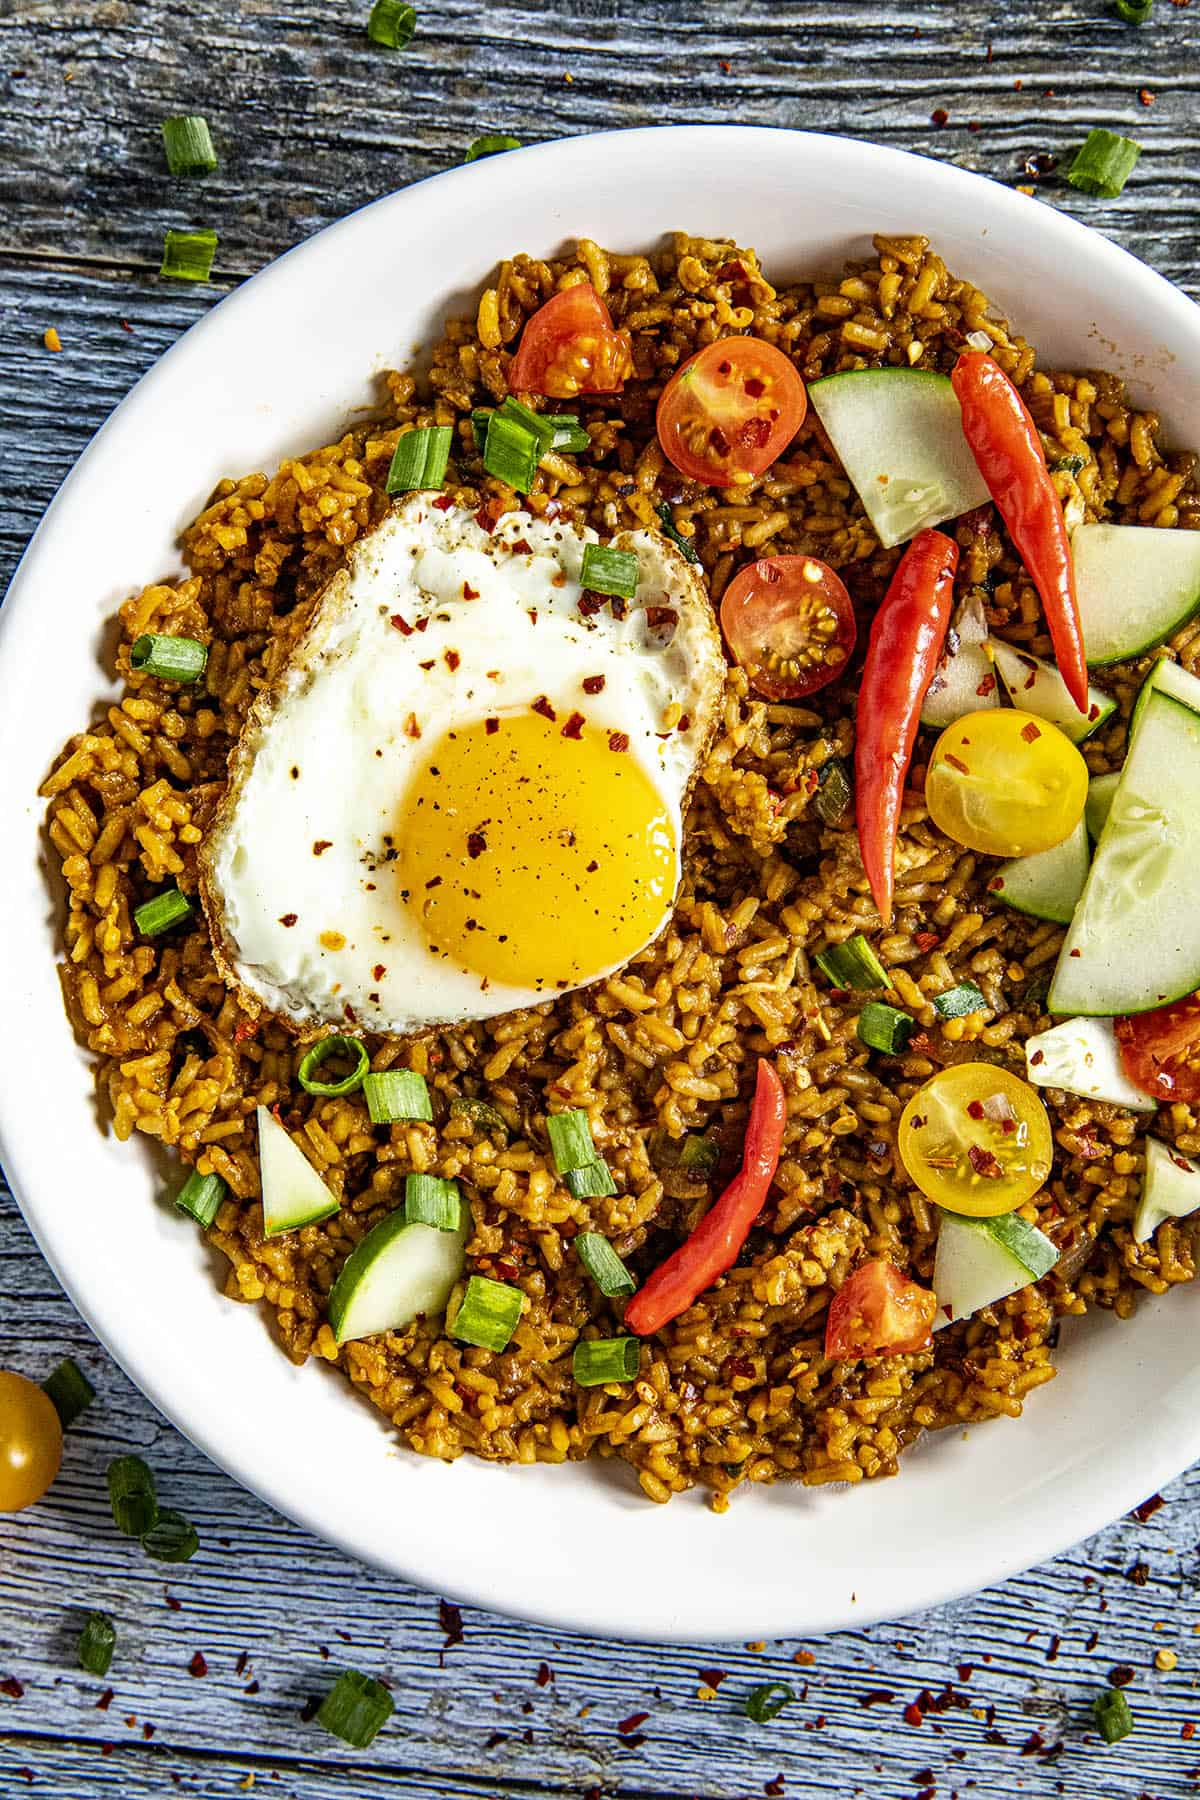 Indonesian Fried Rice (Nasi Goreng) in a bowl